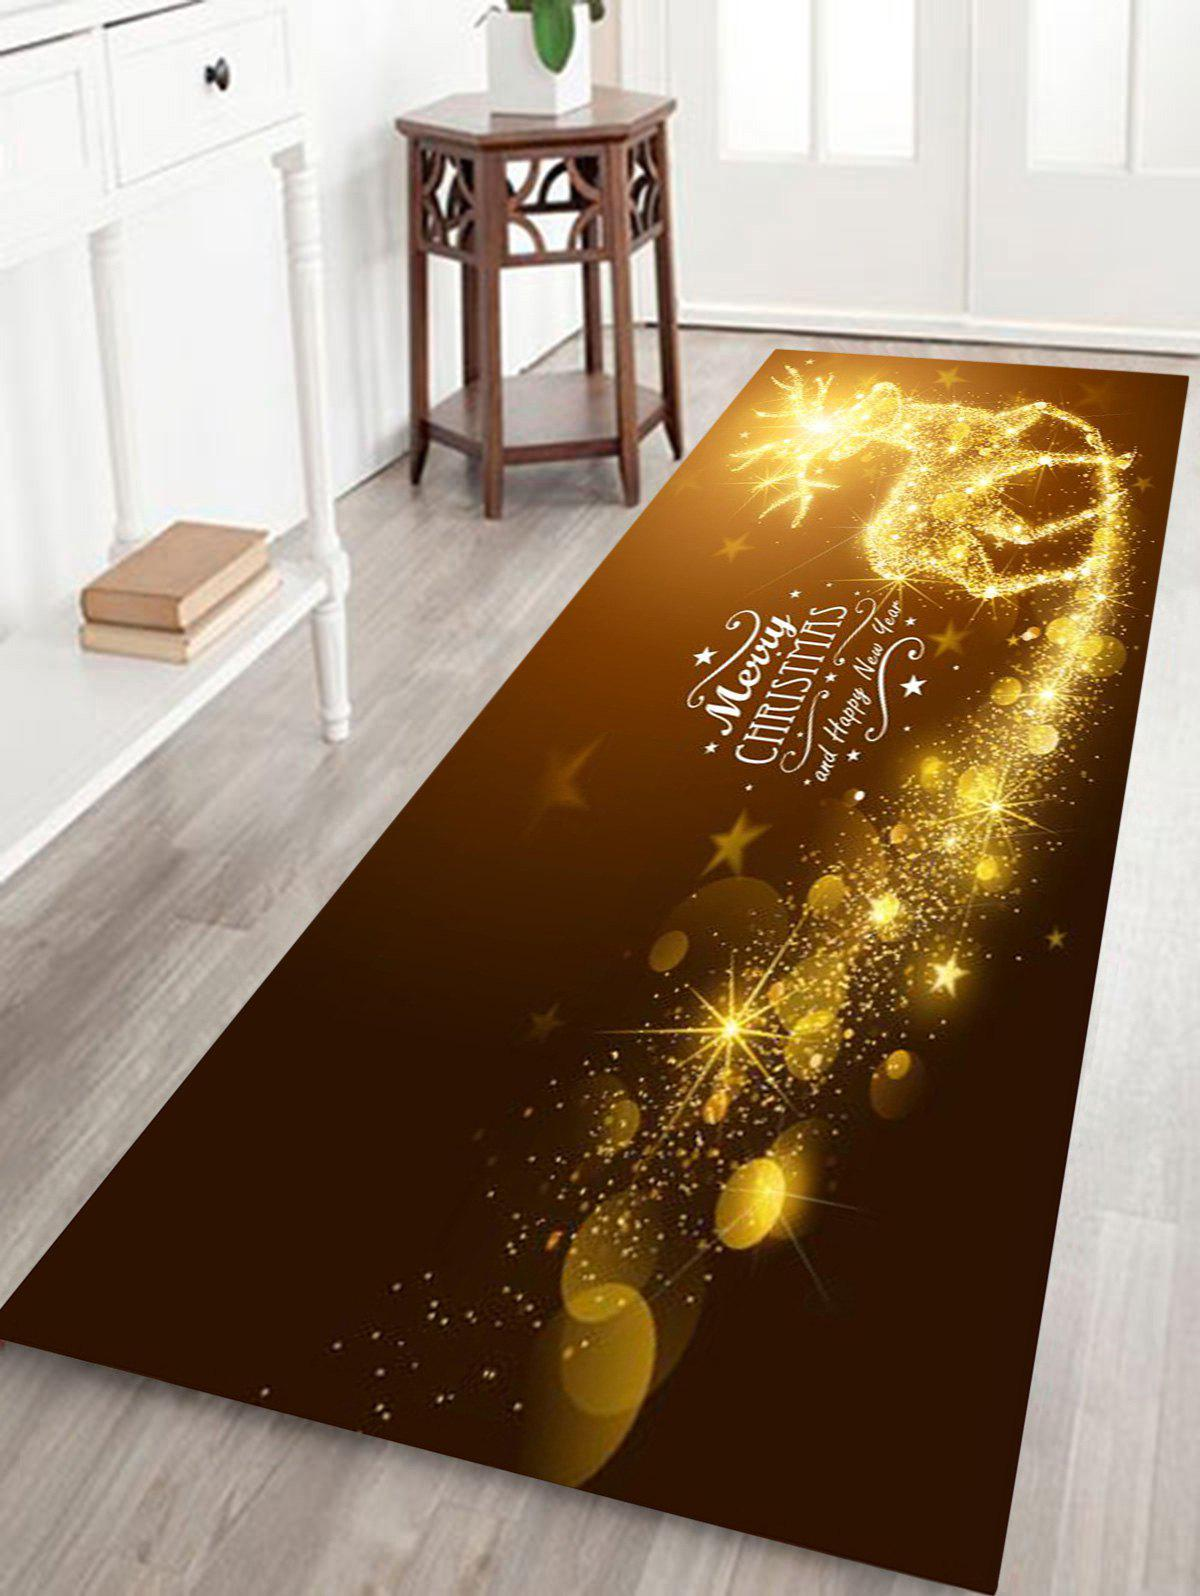 Sparkling Christmas Deer Print Coral Fleece Antiskid Bath MatHOME<br><br>Size: W24 INCH * L71 INCH; Color: GOLD BROWN; Products Type: Bath rugs; Materials: Coral FLeece; Pattern: Elk,Letter; Style: Festival; Shape: Rectangular; Package Contents: 1 x Rug;